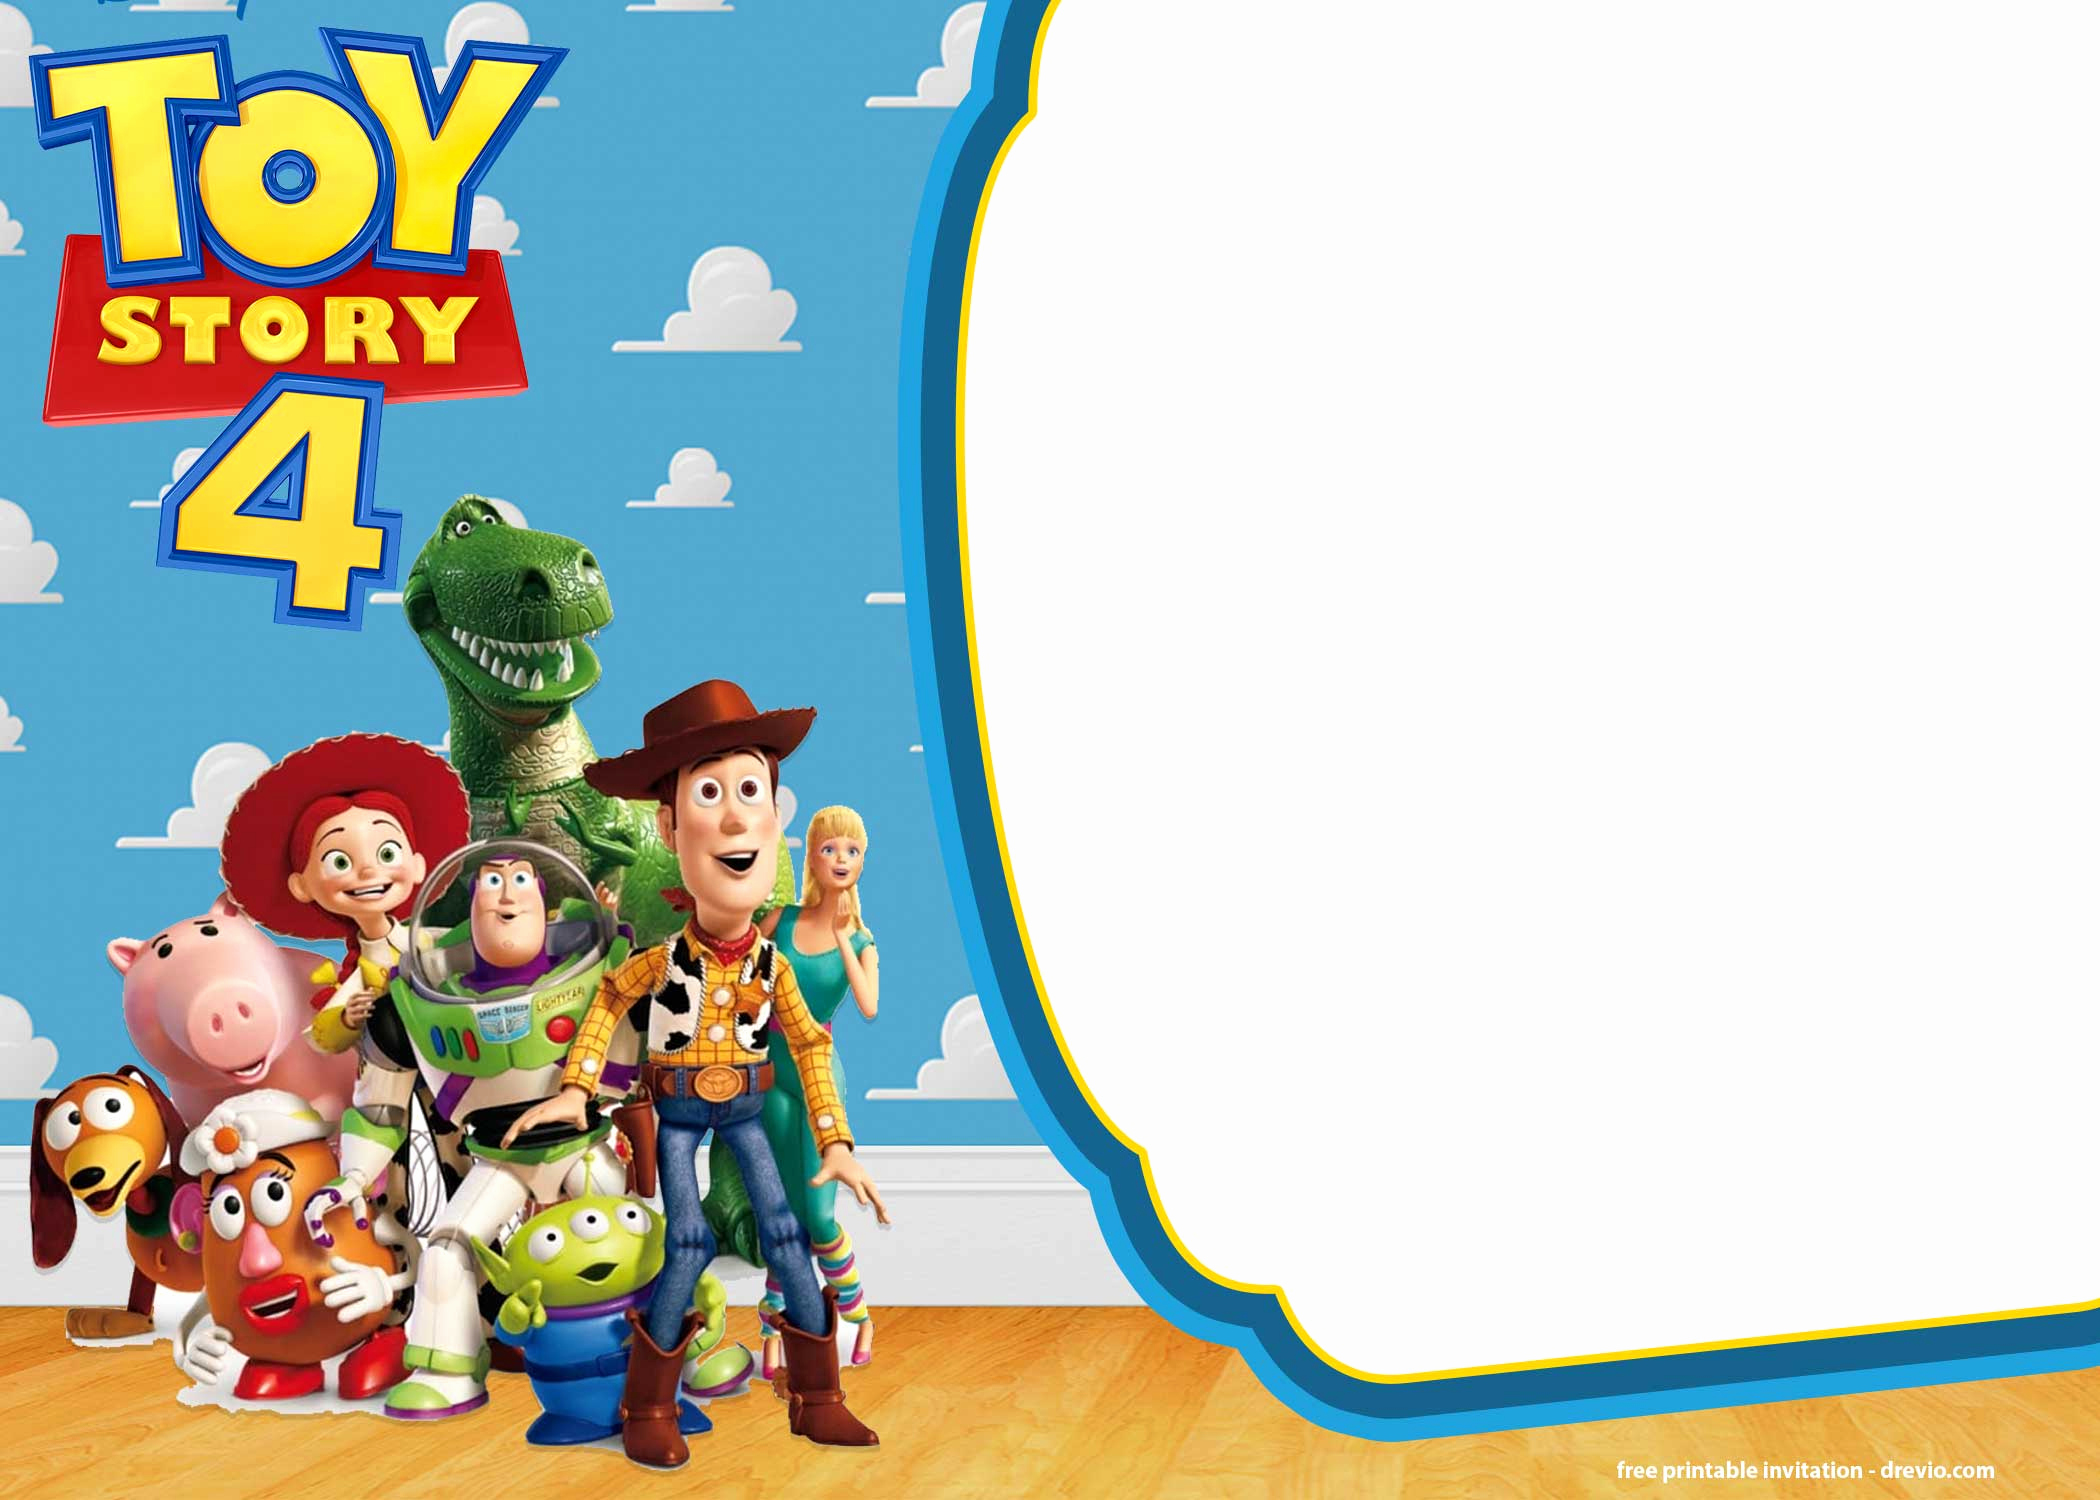 Toy Story Invitation Template Luxury Free Printable toy Story 4 Invitation Templates